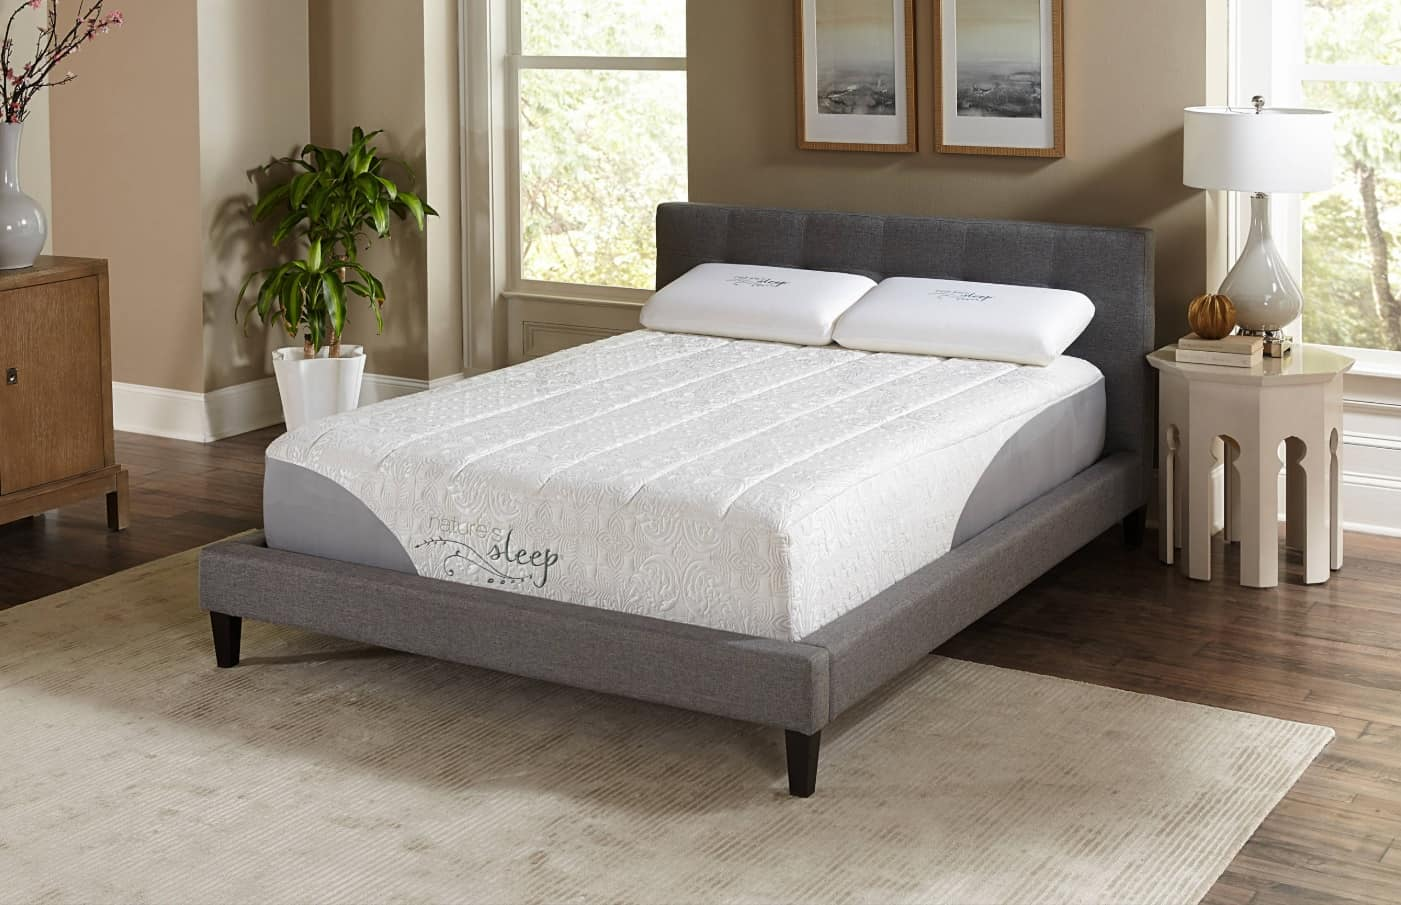 How to Find the Best Foam Mattress